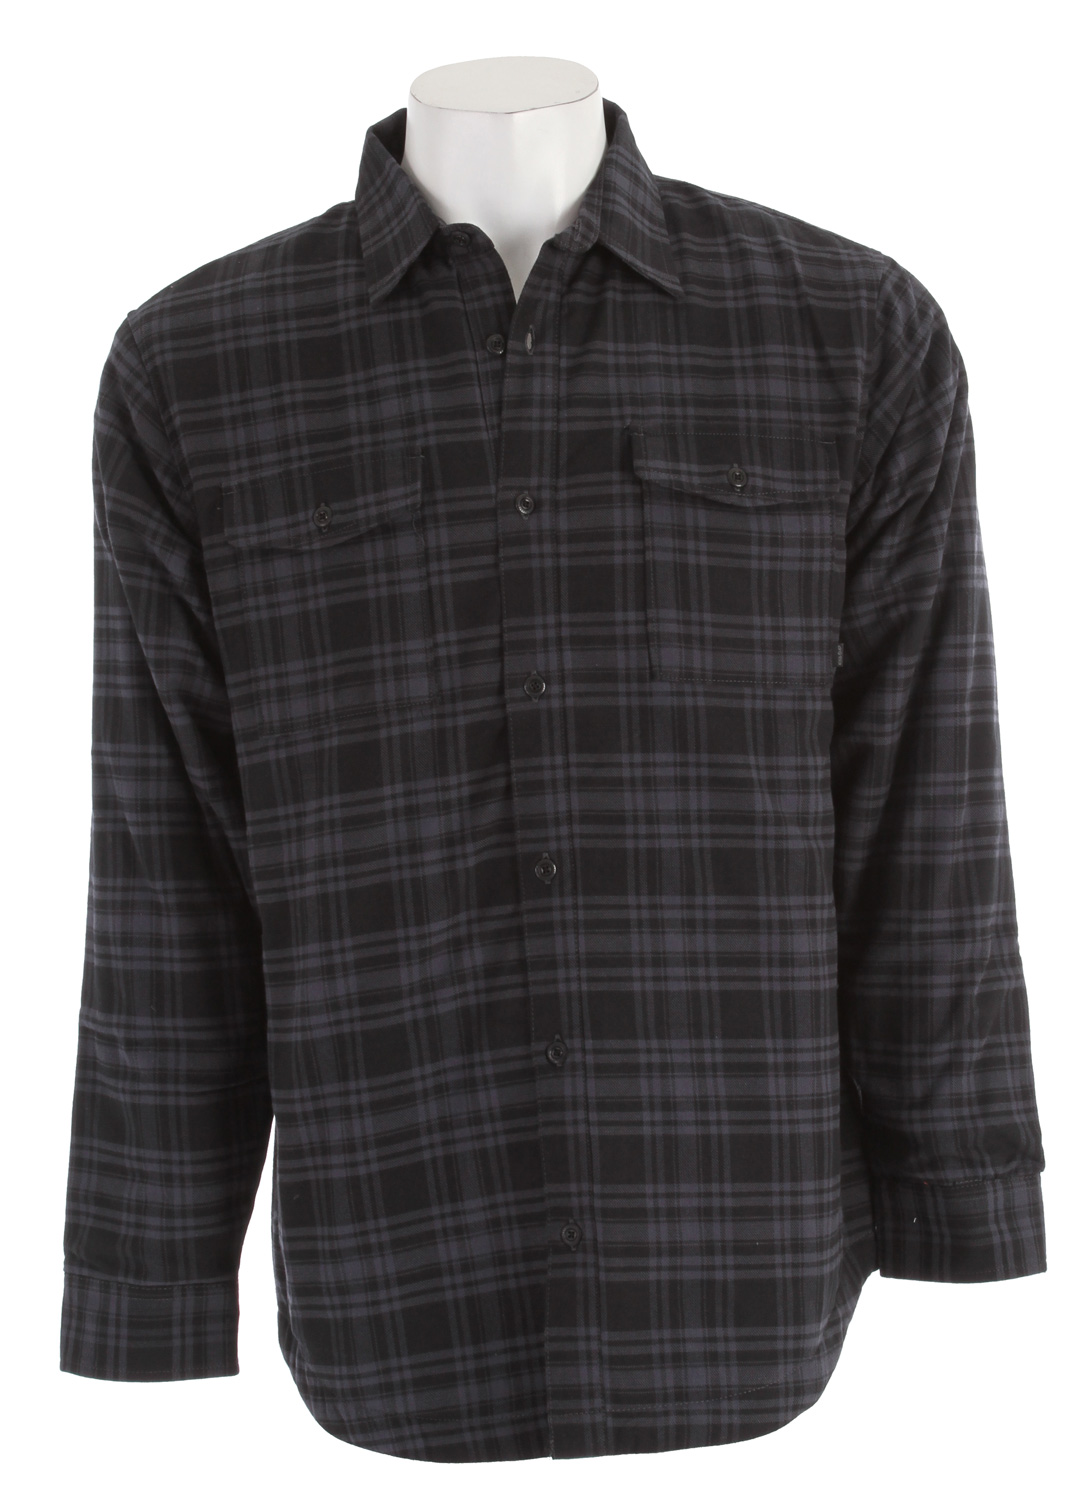 Entertainment The Nike Road Dog Flannel Men's Shirt embodies working-man style: a rugged blend of insulation and classic plaid to help keep you warm on your next adventure. Key Features of the Nike Road Dog Insulated Flannel Shirt: Foldover collar and windowpane plaid for classic styling 60g of lightweight insulation to help keep you warm Button-closed security pockets to hold your gear tight Long sleeves with button cuffs for warmth and an adjustable fit Fabric: 100% cotton Machine wash - $41.95